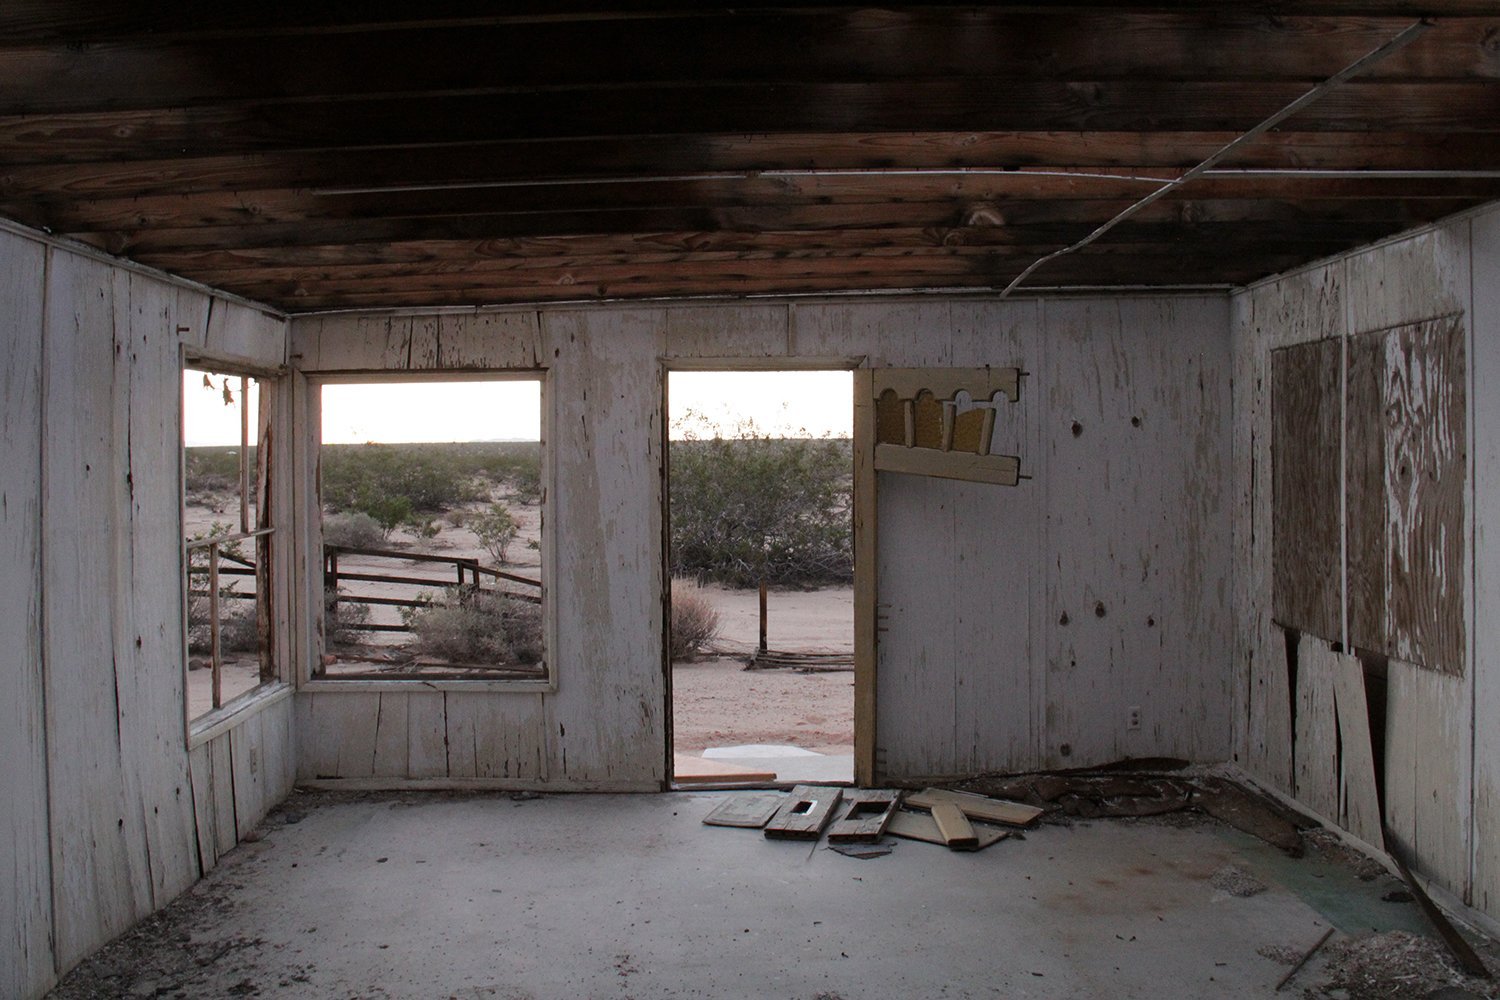 """Assess planning and permits. """"Before you begin, you're looking at a lot of forward planning, so be prepared to spend a lot of time with your local building department,"""" says Kathrin Smirke who bought a collapsing cabin in Joshua Tree, California. She explains you should never rush into a project without proper planning, and this should start with a consultation with your local building authorities.   Photo 2 of 21 in Experts Reveal the Top 10 Things to Consider Before Investing in a Fixer-Upper from A Couple Buy a Collapsing Cabin for $7K in Joshua Tree and Revamp it Into a Desert Oasis"""